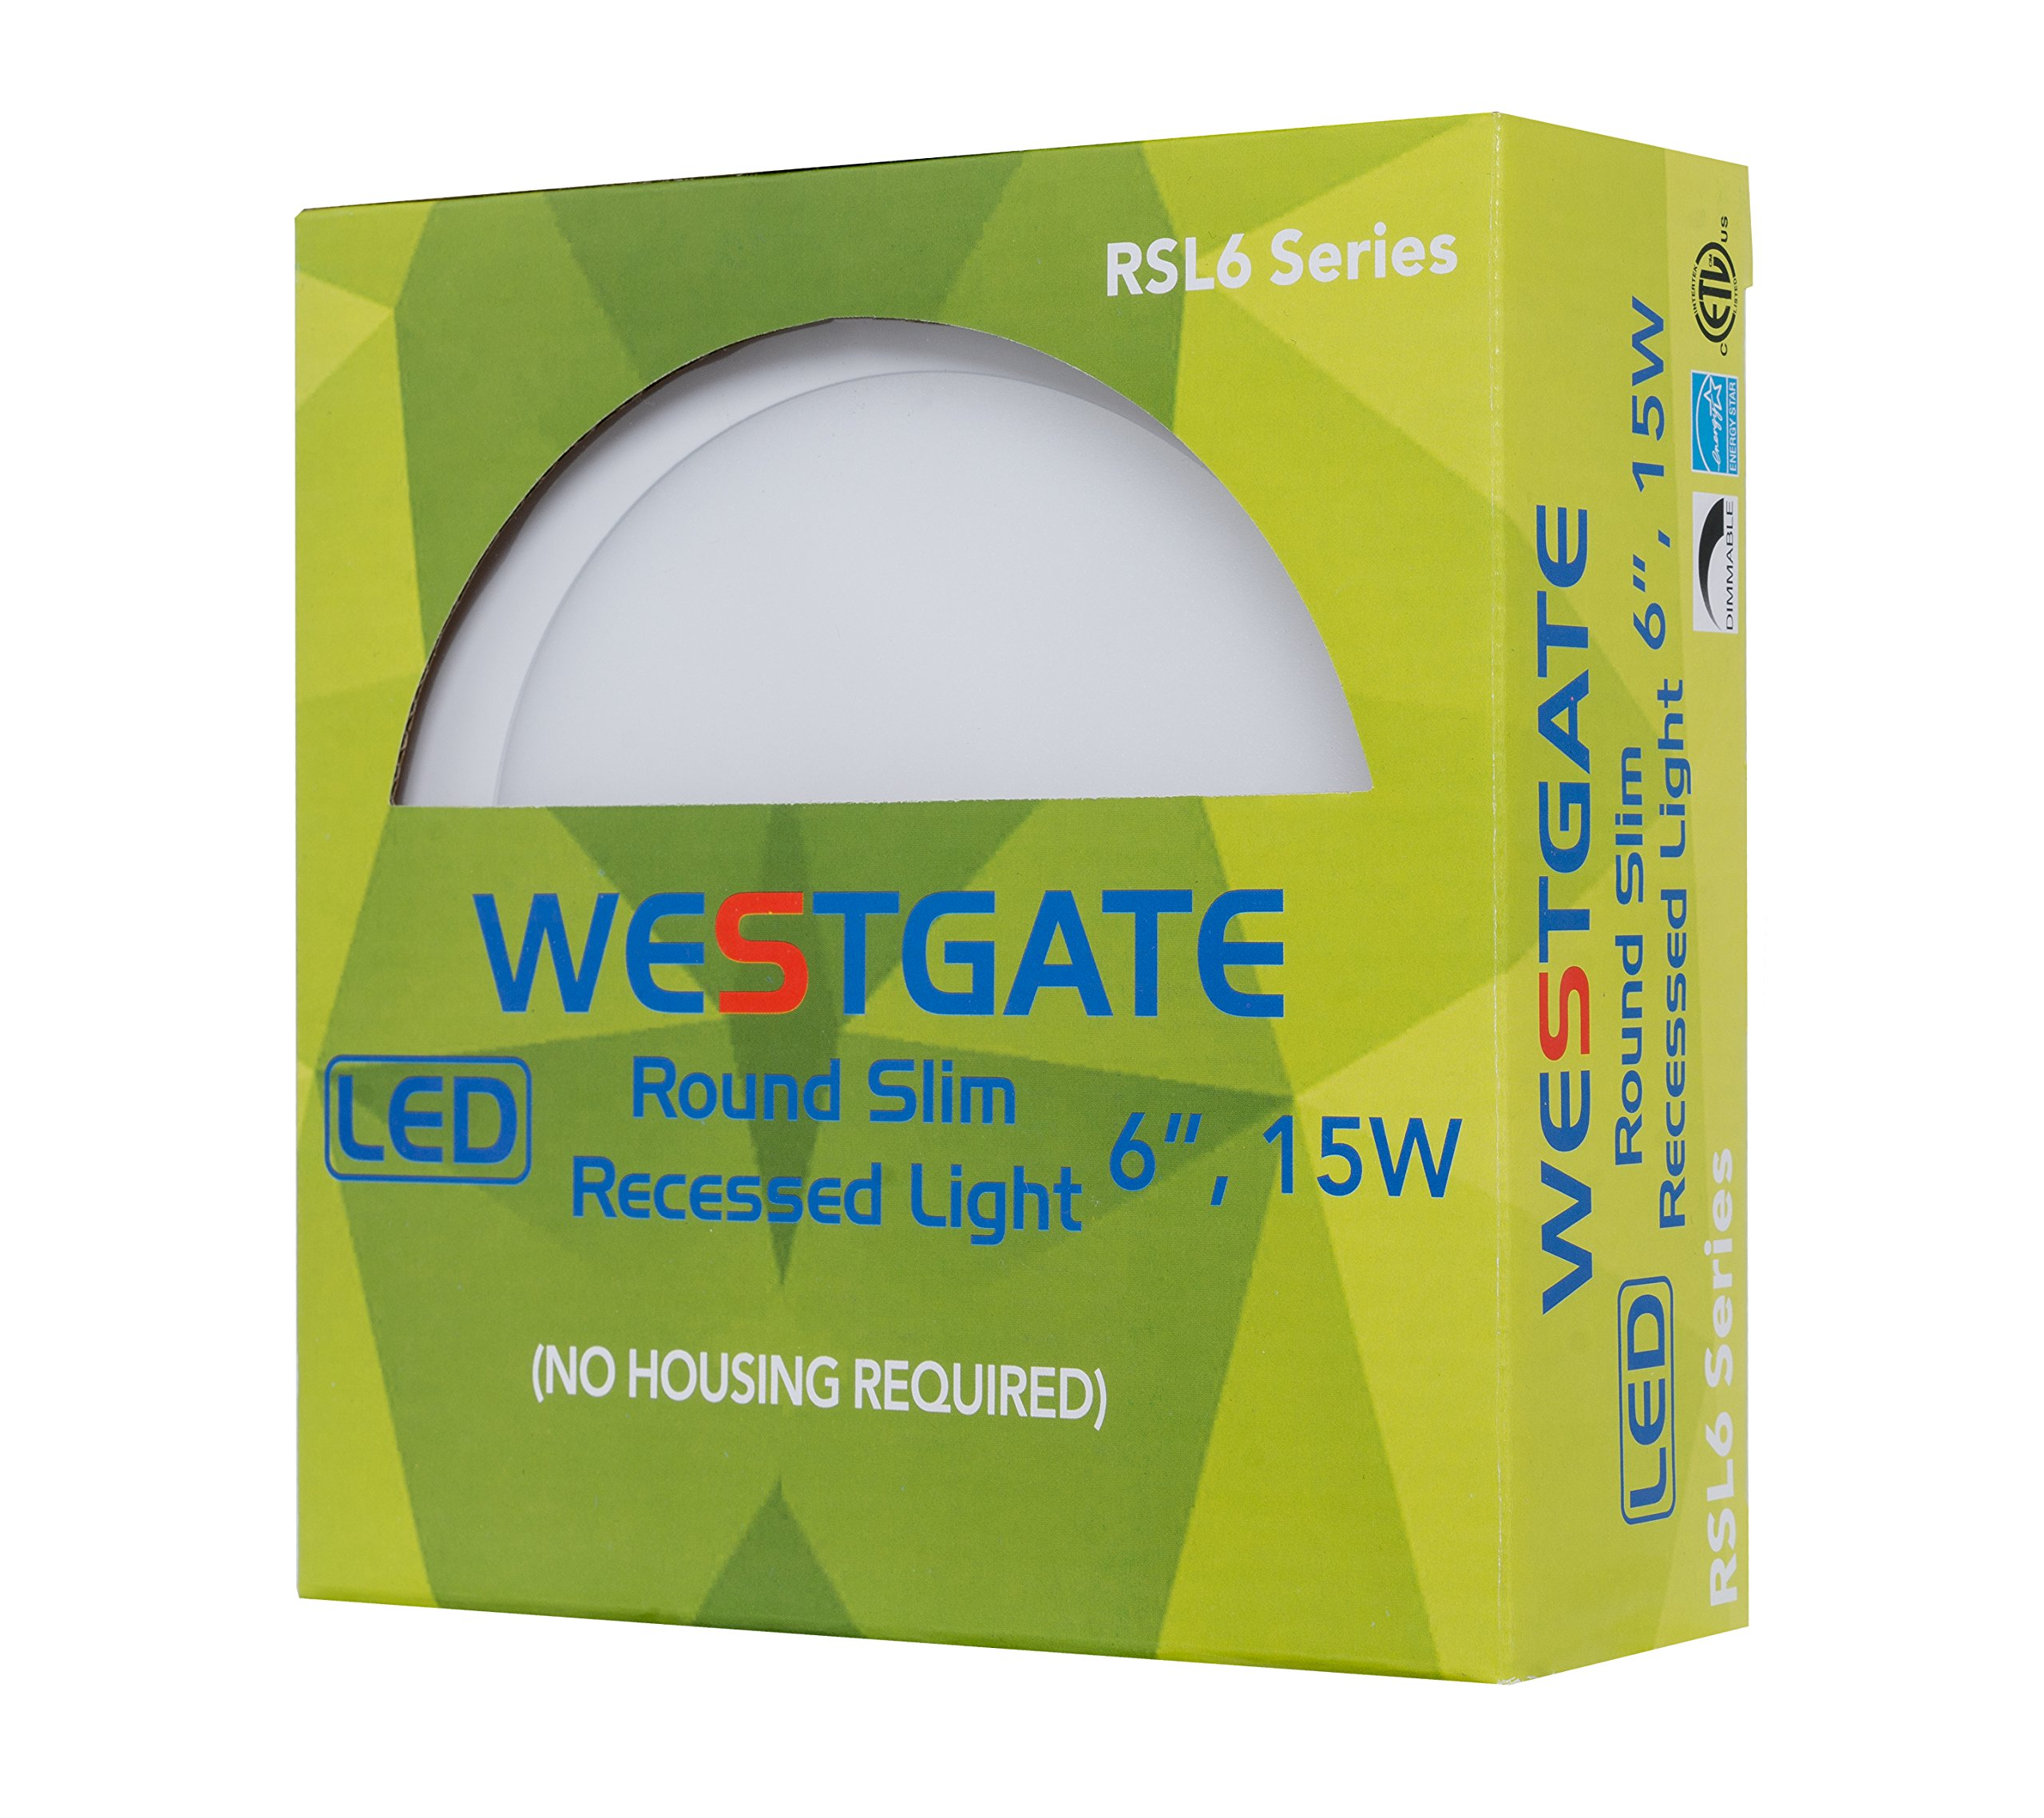 Westgate Lighting 15W 6'' Inch Ultra Thin Slim LED Recessed Light - Dimmable Retrofit Downlight Smooth Trim - Junction Box Included - No Housing Required - Ceiling Lights (8 Pack, 3000K Soft White) by Westgate (Image #8)